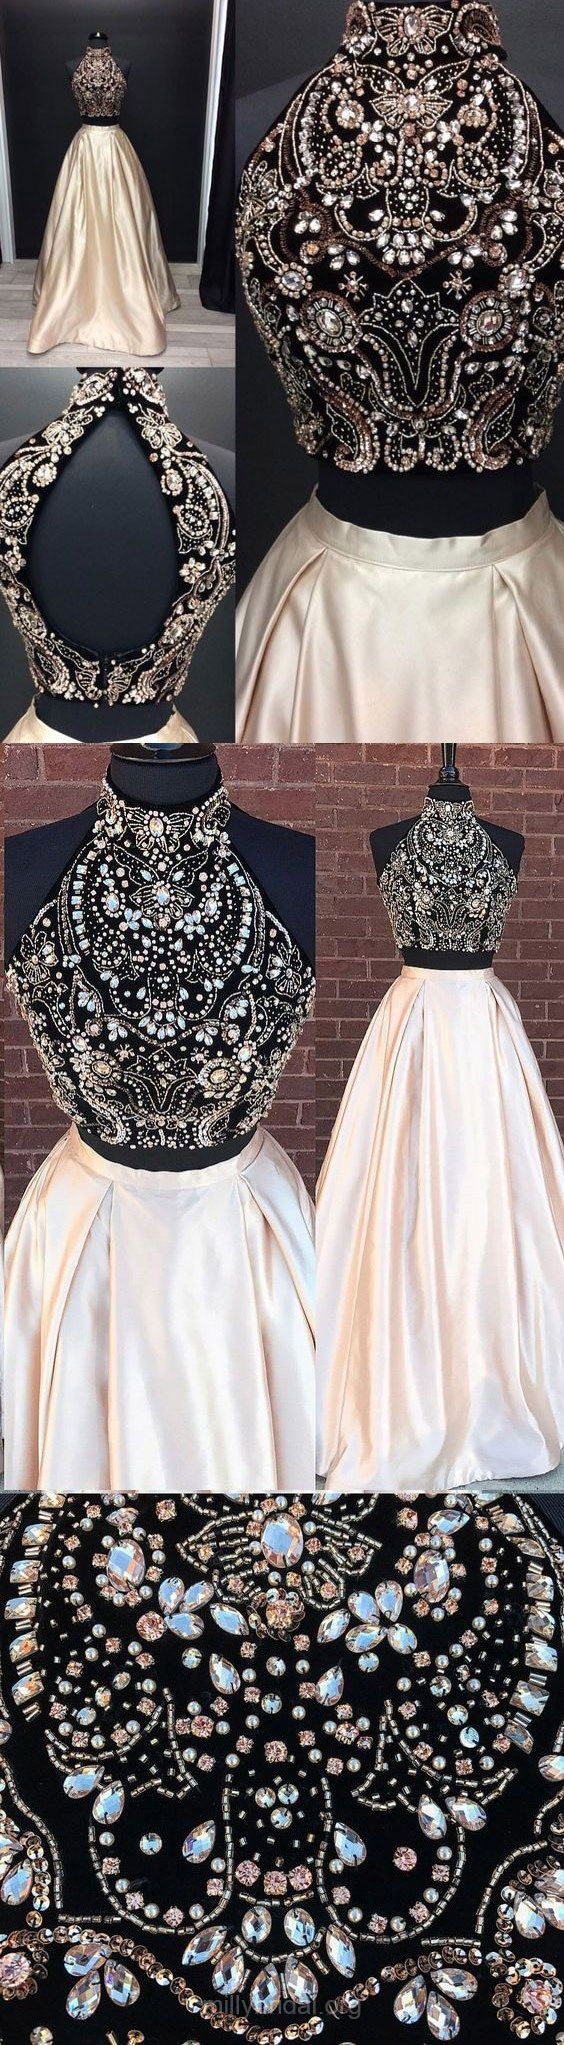 Ball gown prom dresses two piece prom dresses long prom dresses